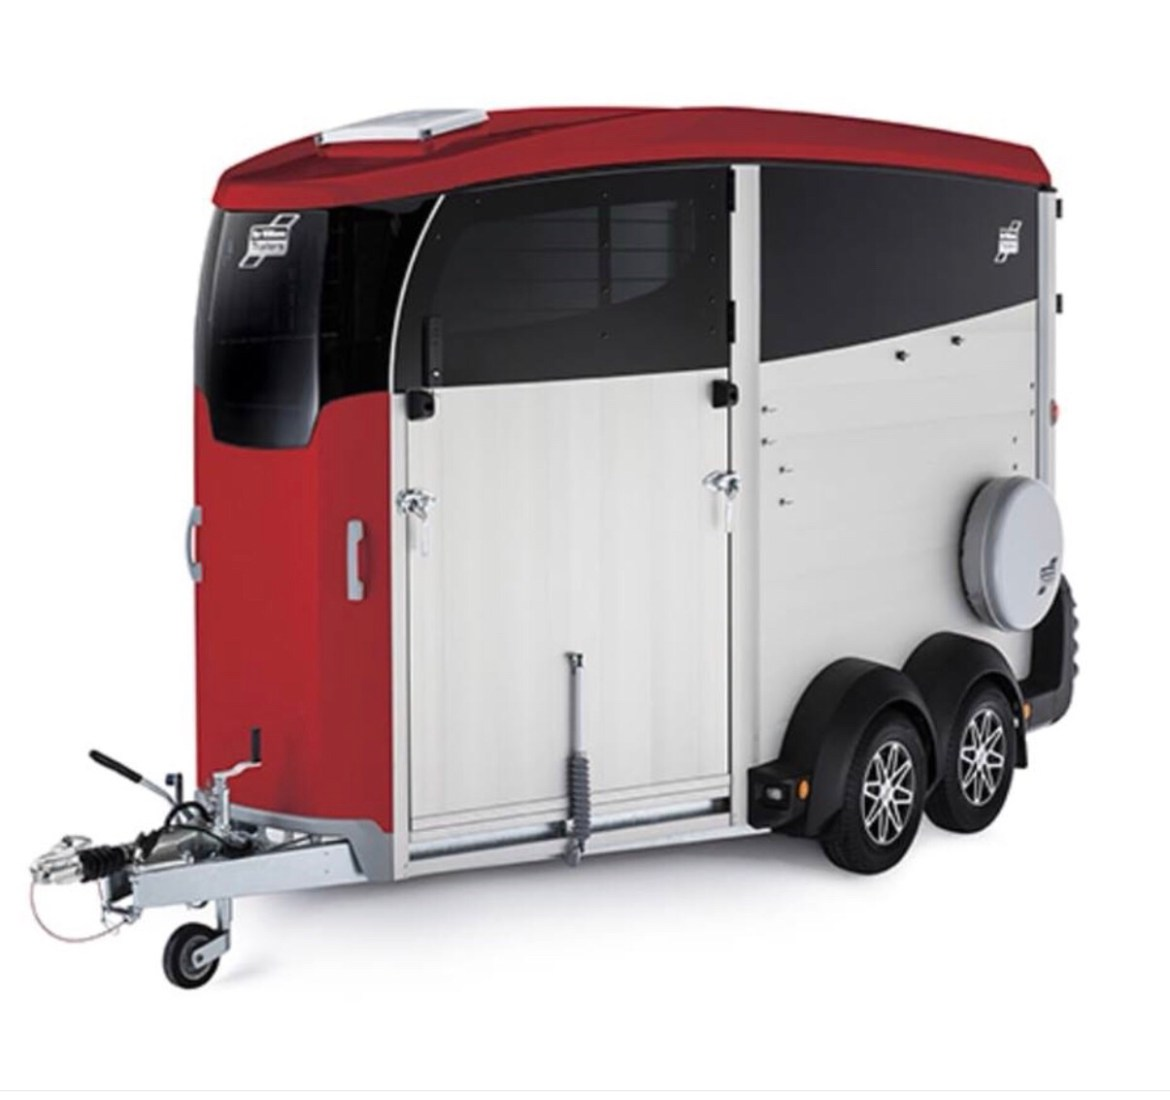 Ifor Williams HBX trailer in red and aluminium.